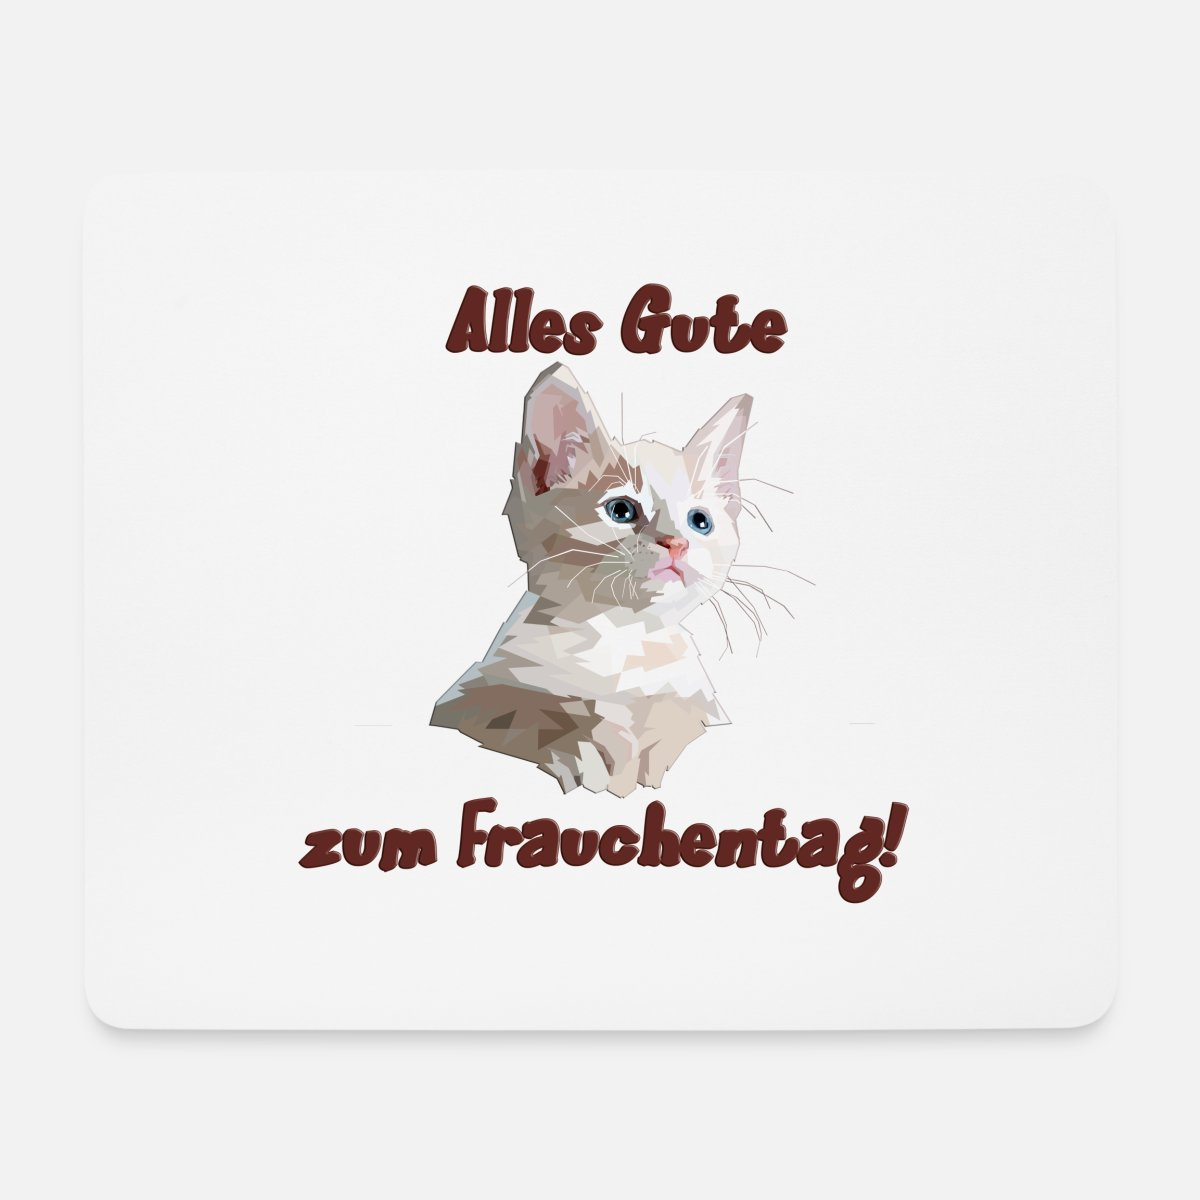 Mouse Pad Cat Mousepad Birthday Gift for Sister Birthday Best Friend Office Desk Accessories Gift Cat Lover New Job Gift Desk Decor Fun 9179